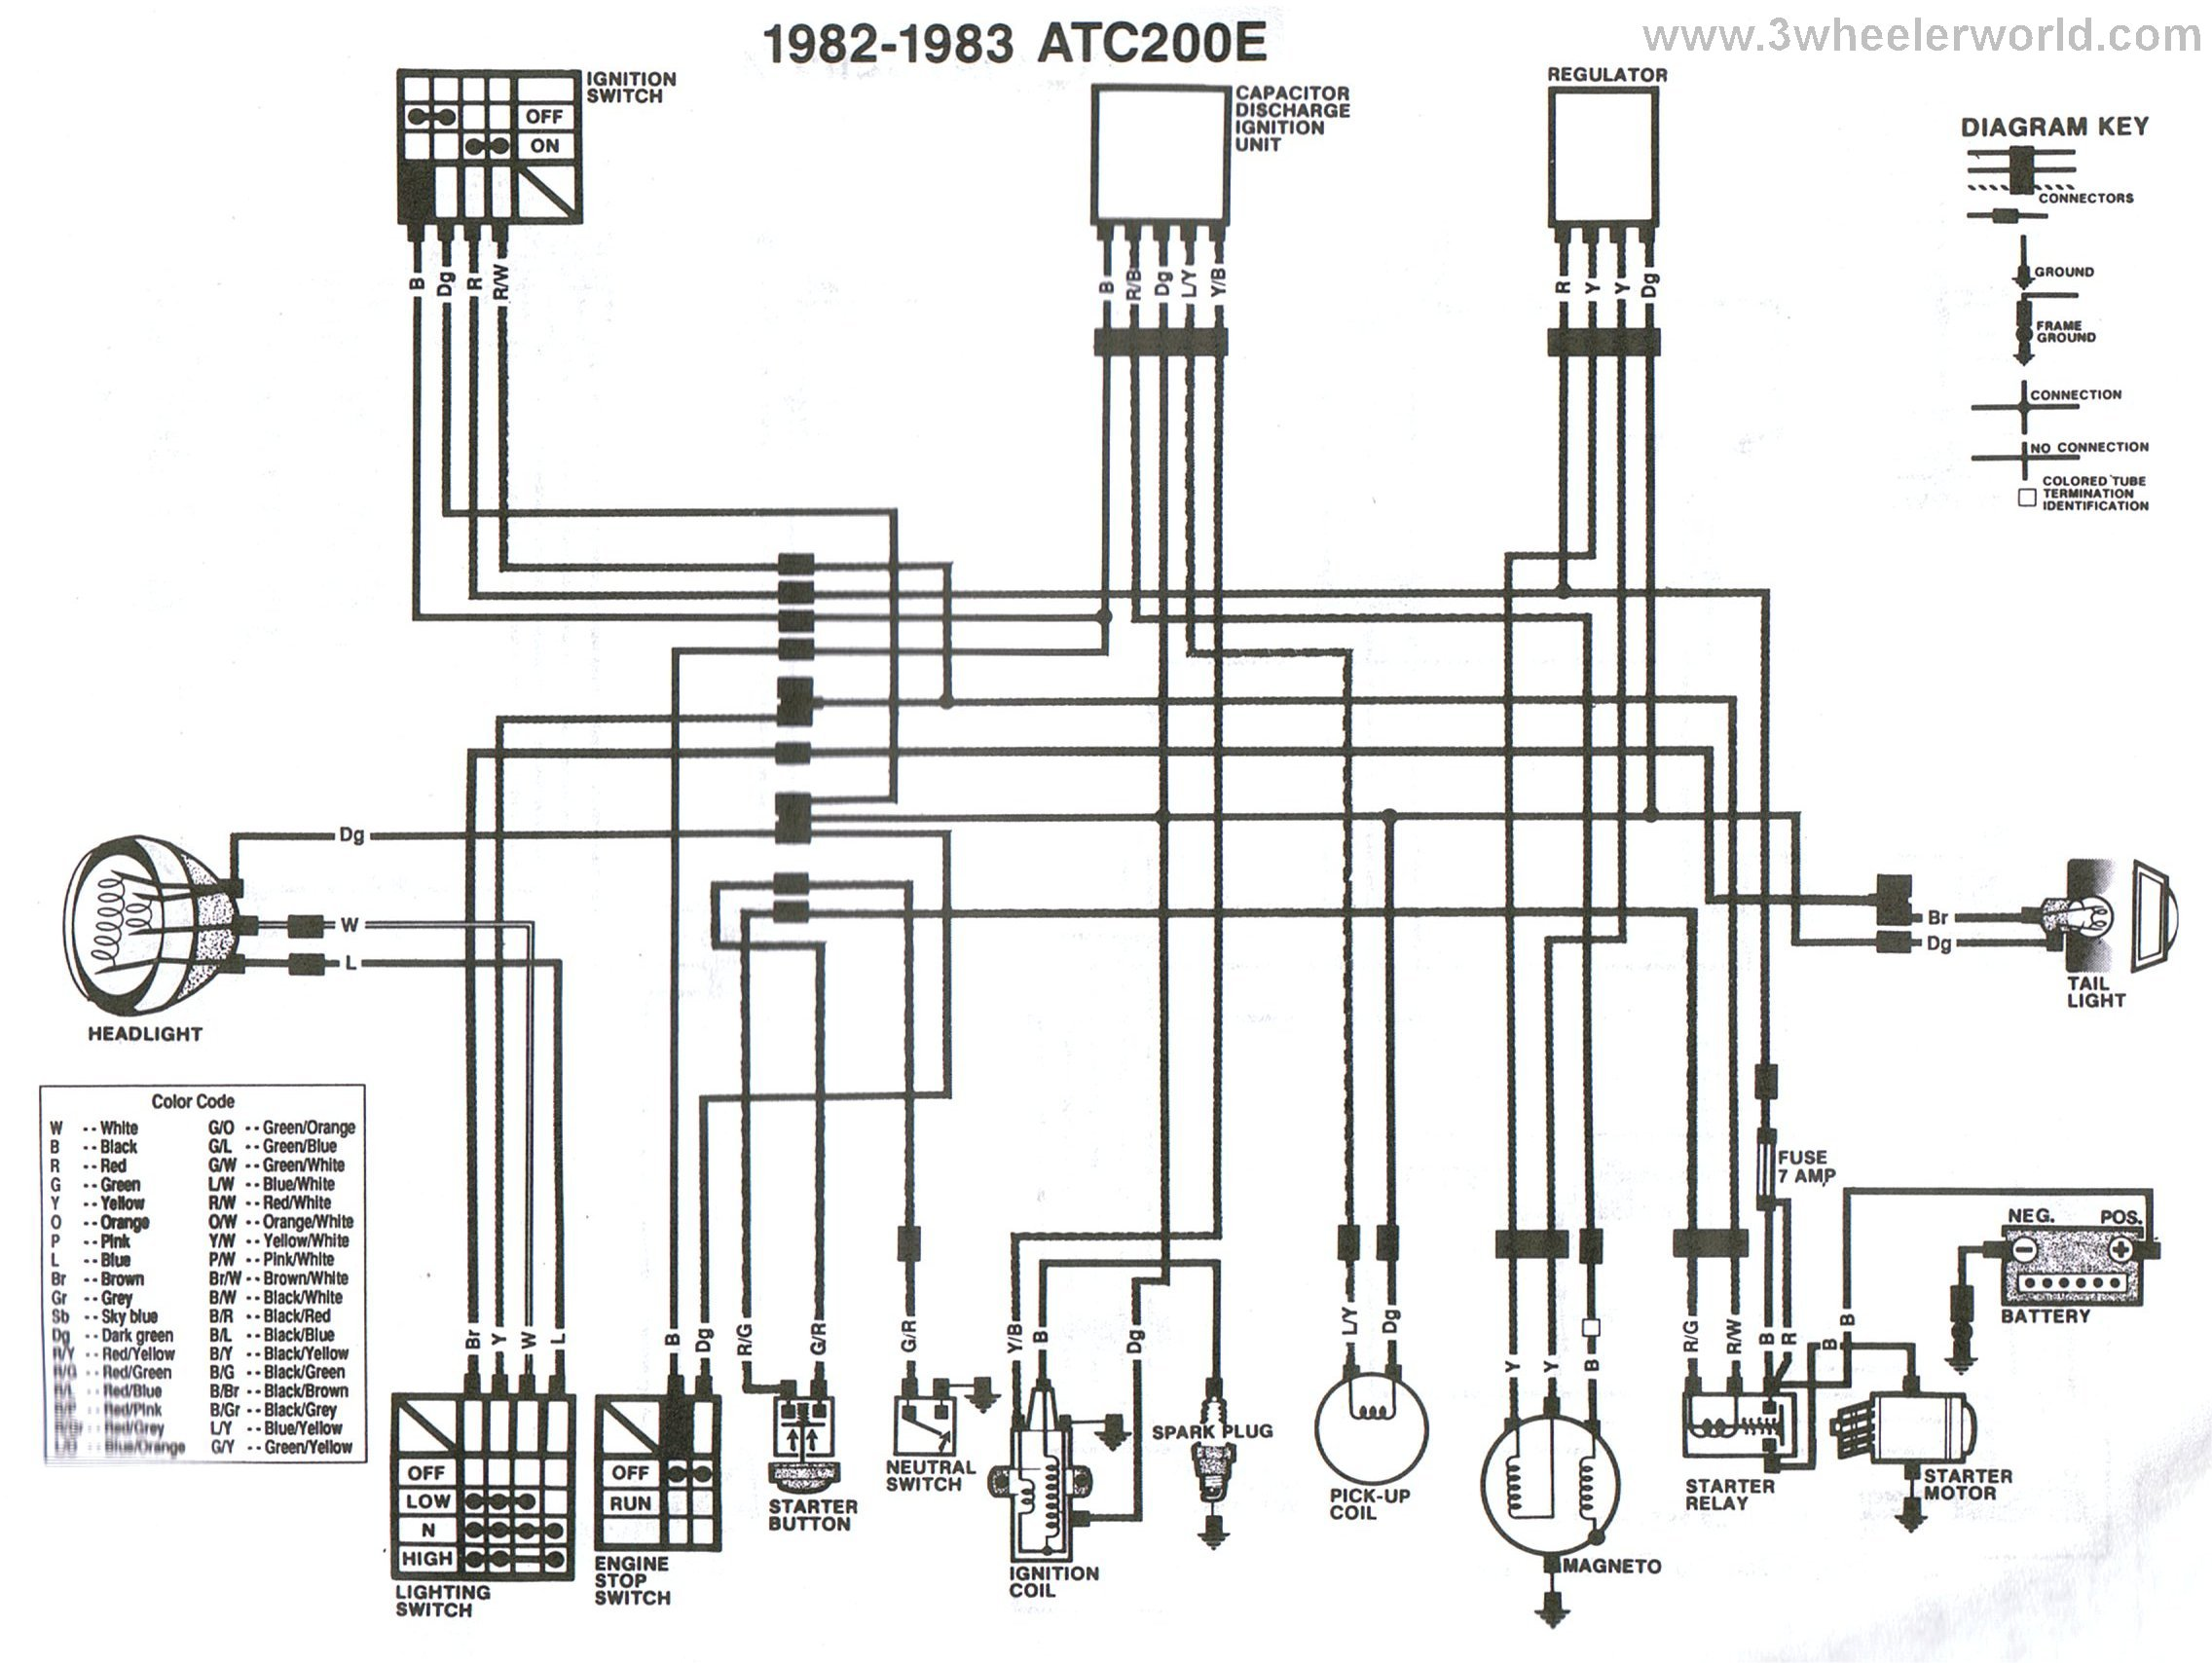 atc 200es wiring diagram schematics wiring diagrams u2022 rh hokispokisrecords com 1984 honda big red 200es wiring diagram honda atc 200 es wiring diagram